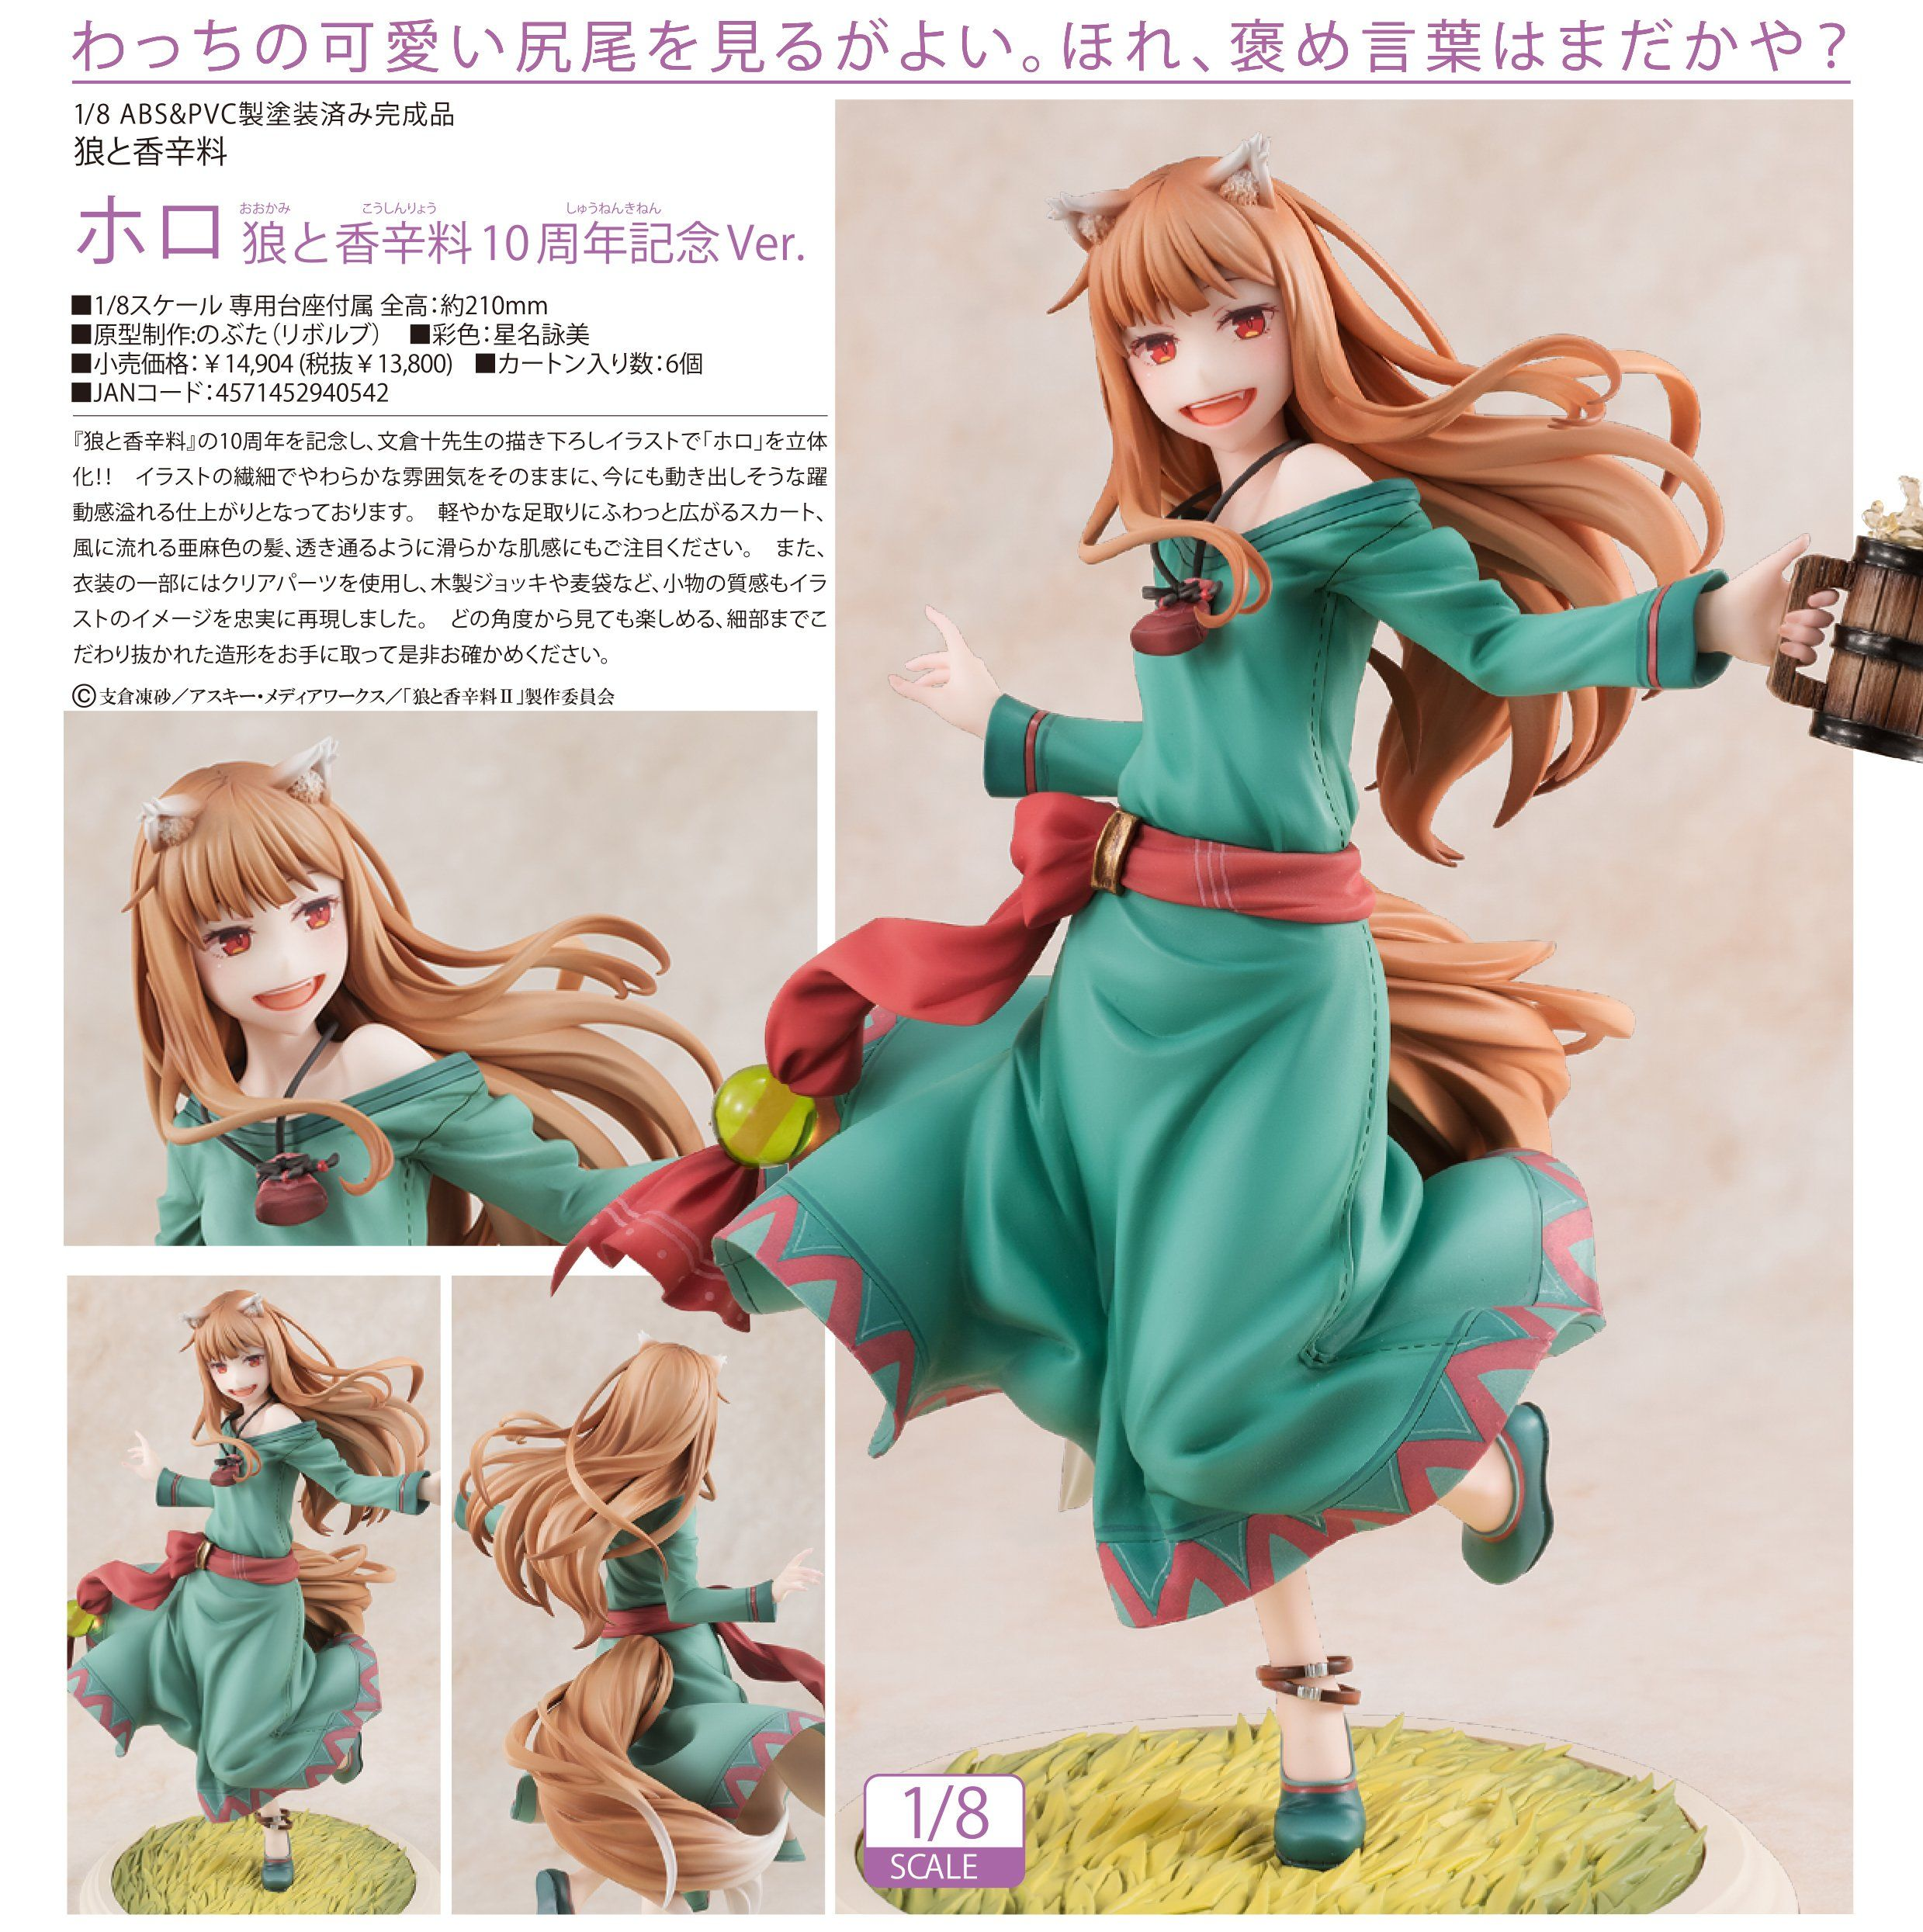 Pre wedding party table decorations february 2019 Revolve Spice and Wolf Holo th Anniversary Ver  Scale Figure